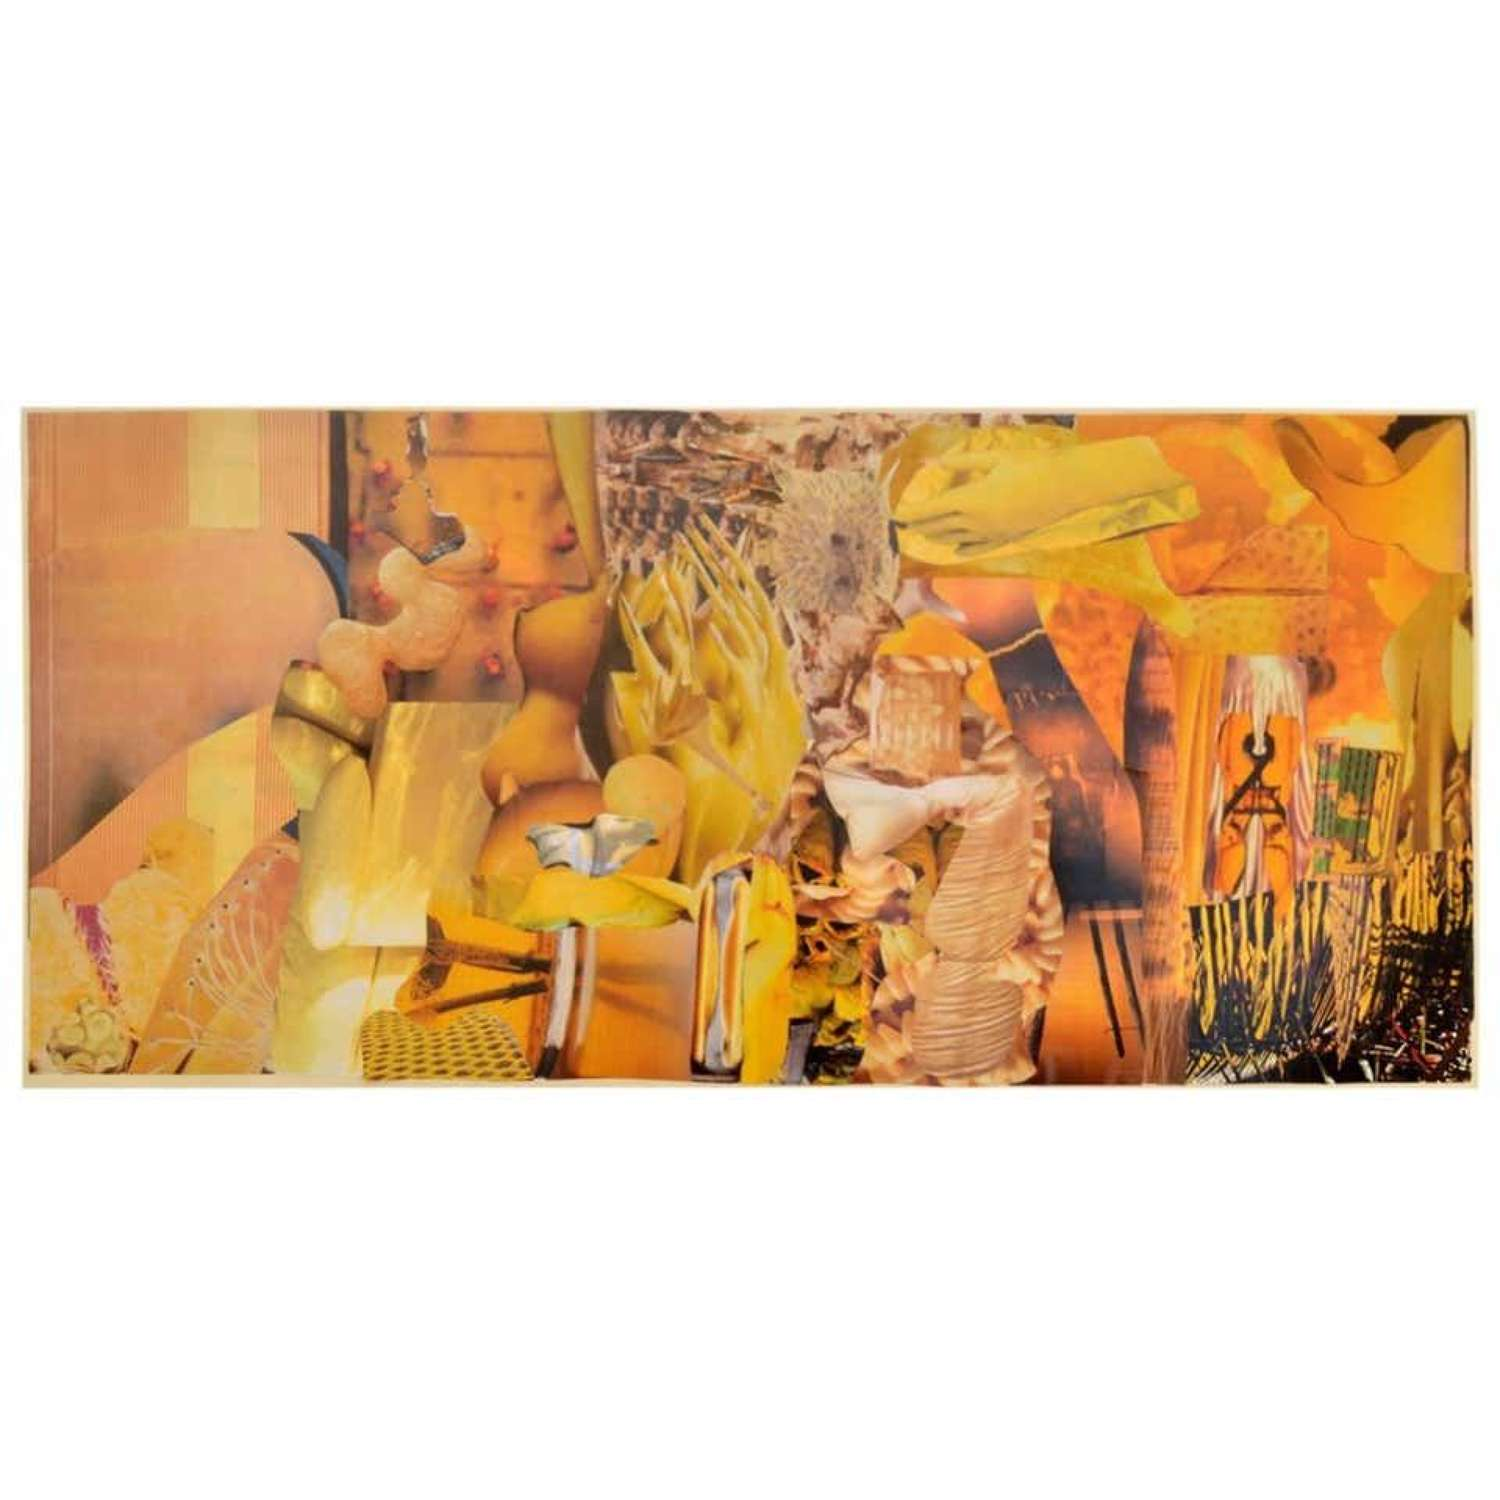 Abstract Collage Art in Yellow by B Allan, UK, 1993